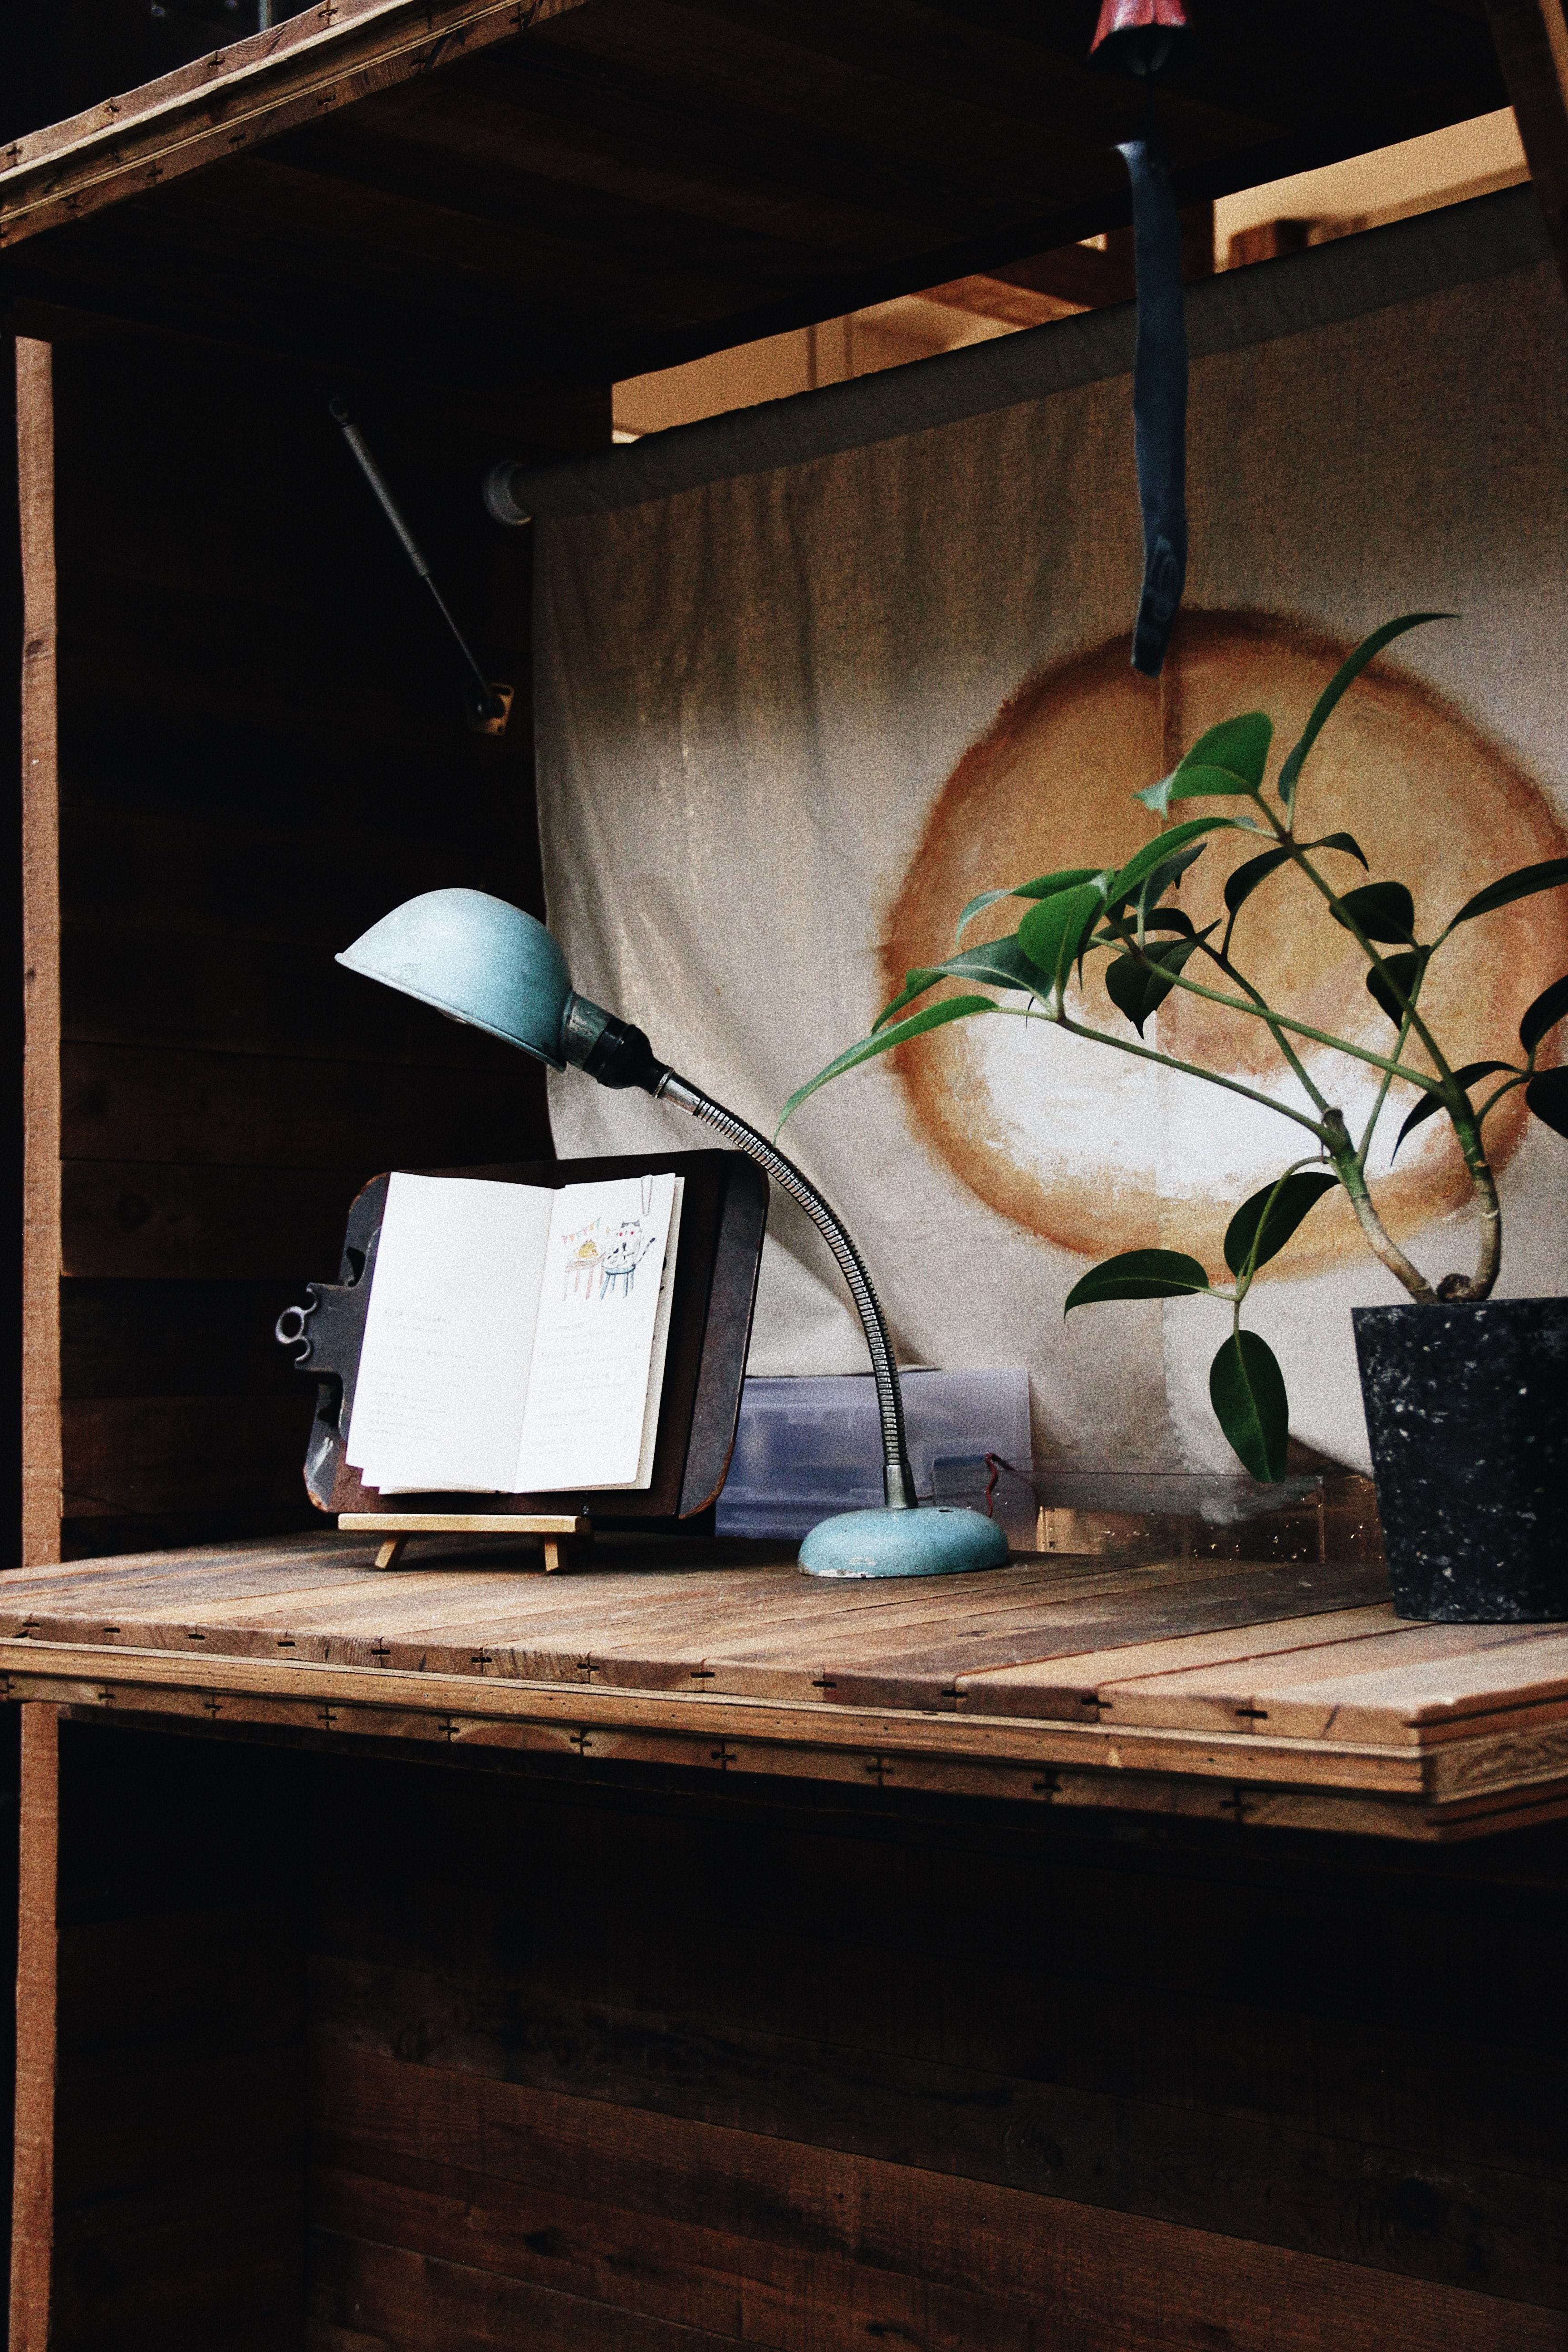 teal study lamp beside black wooden note book with black stand